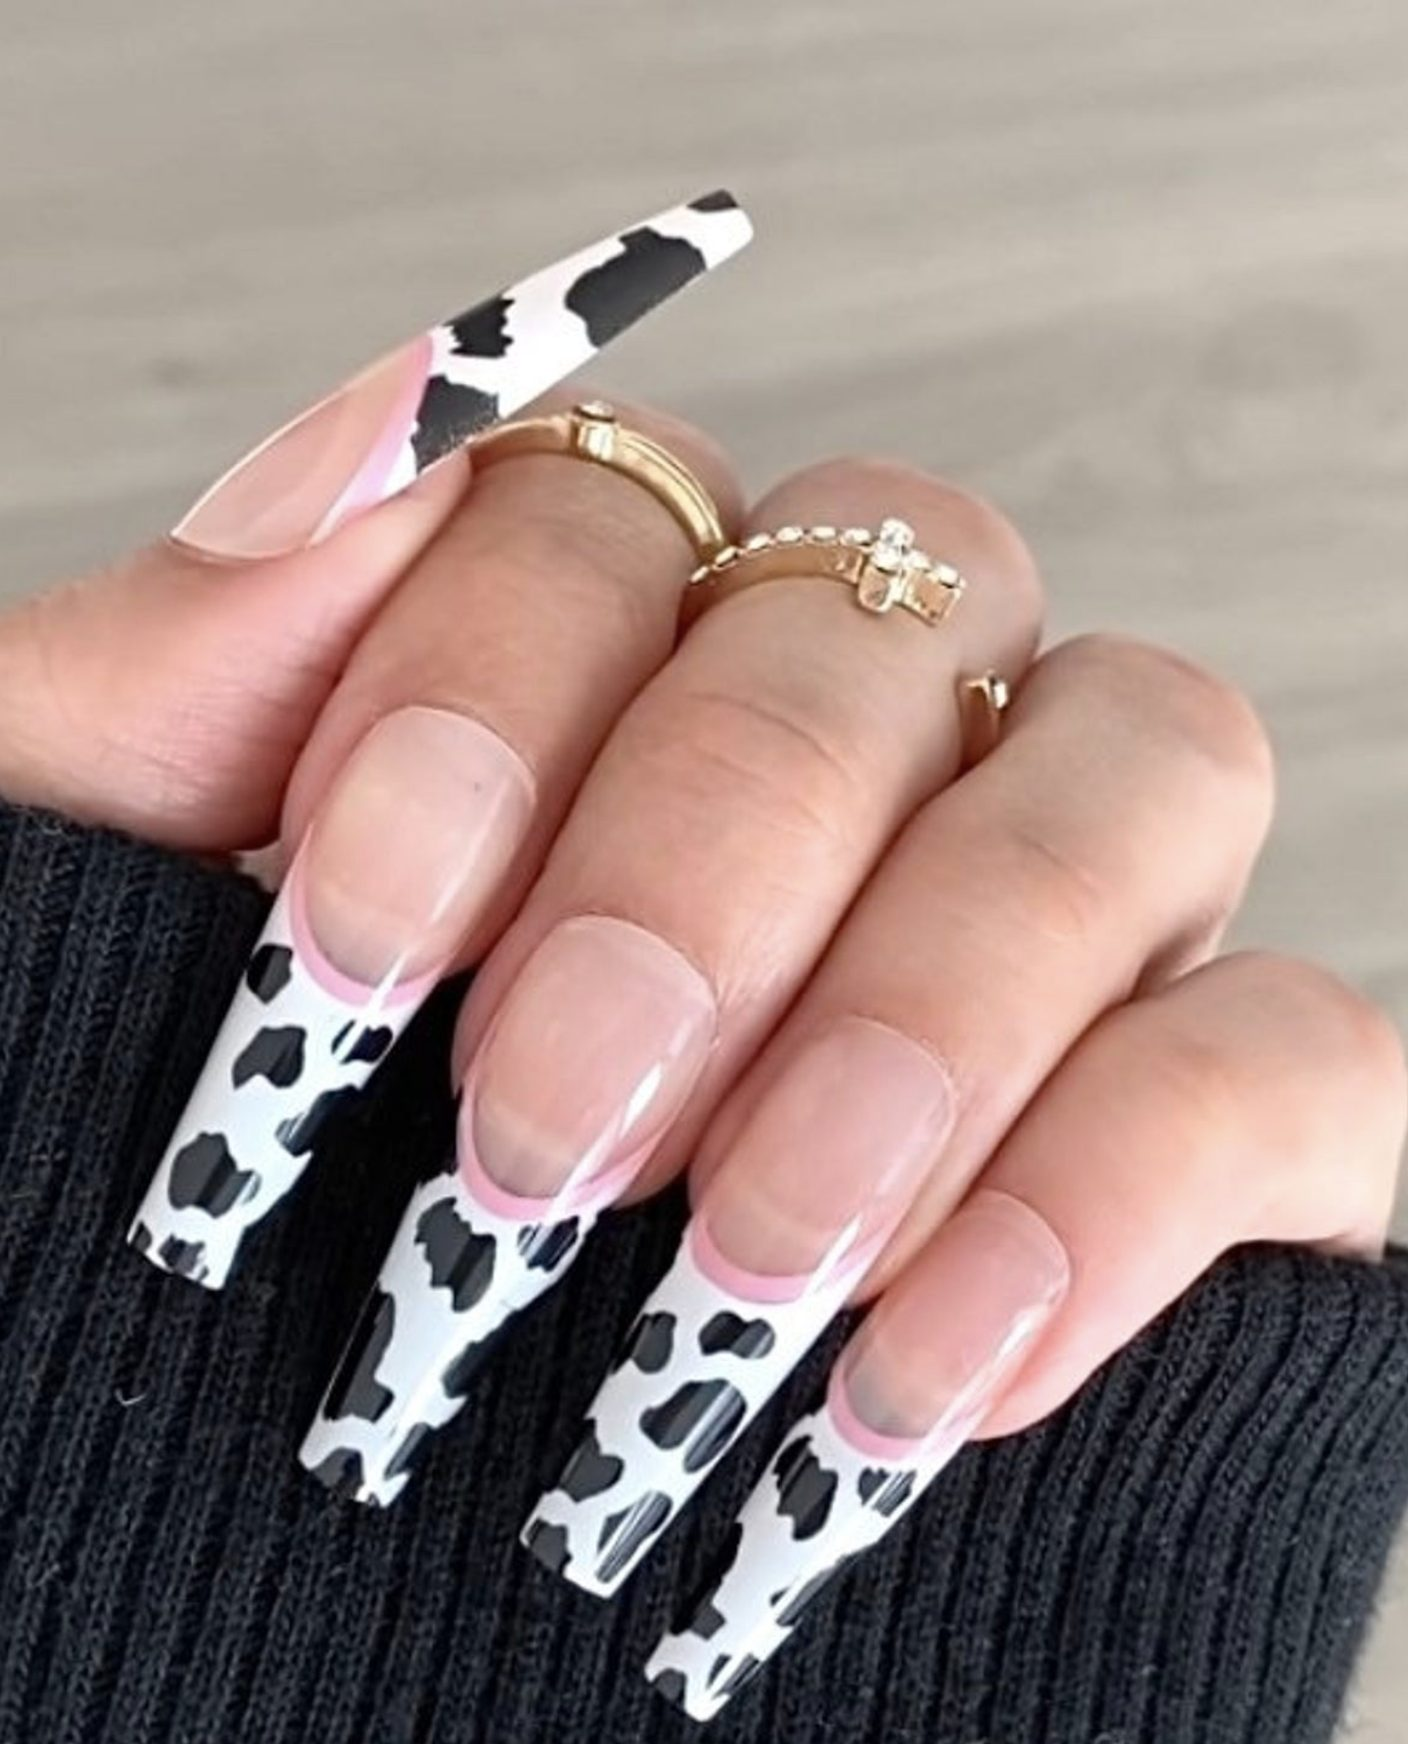 French tip nails with cow pattern in the shape of an acrylic coffin